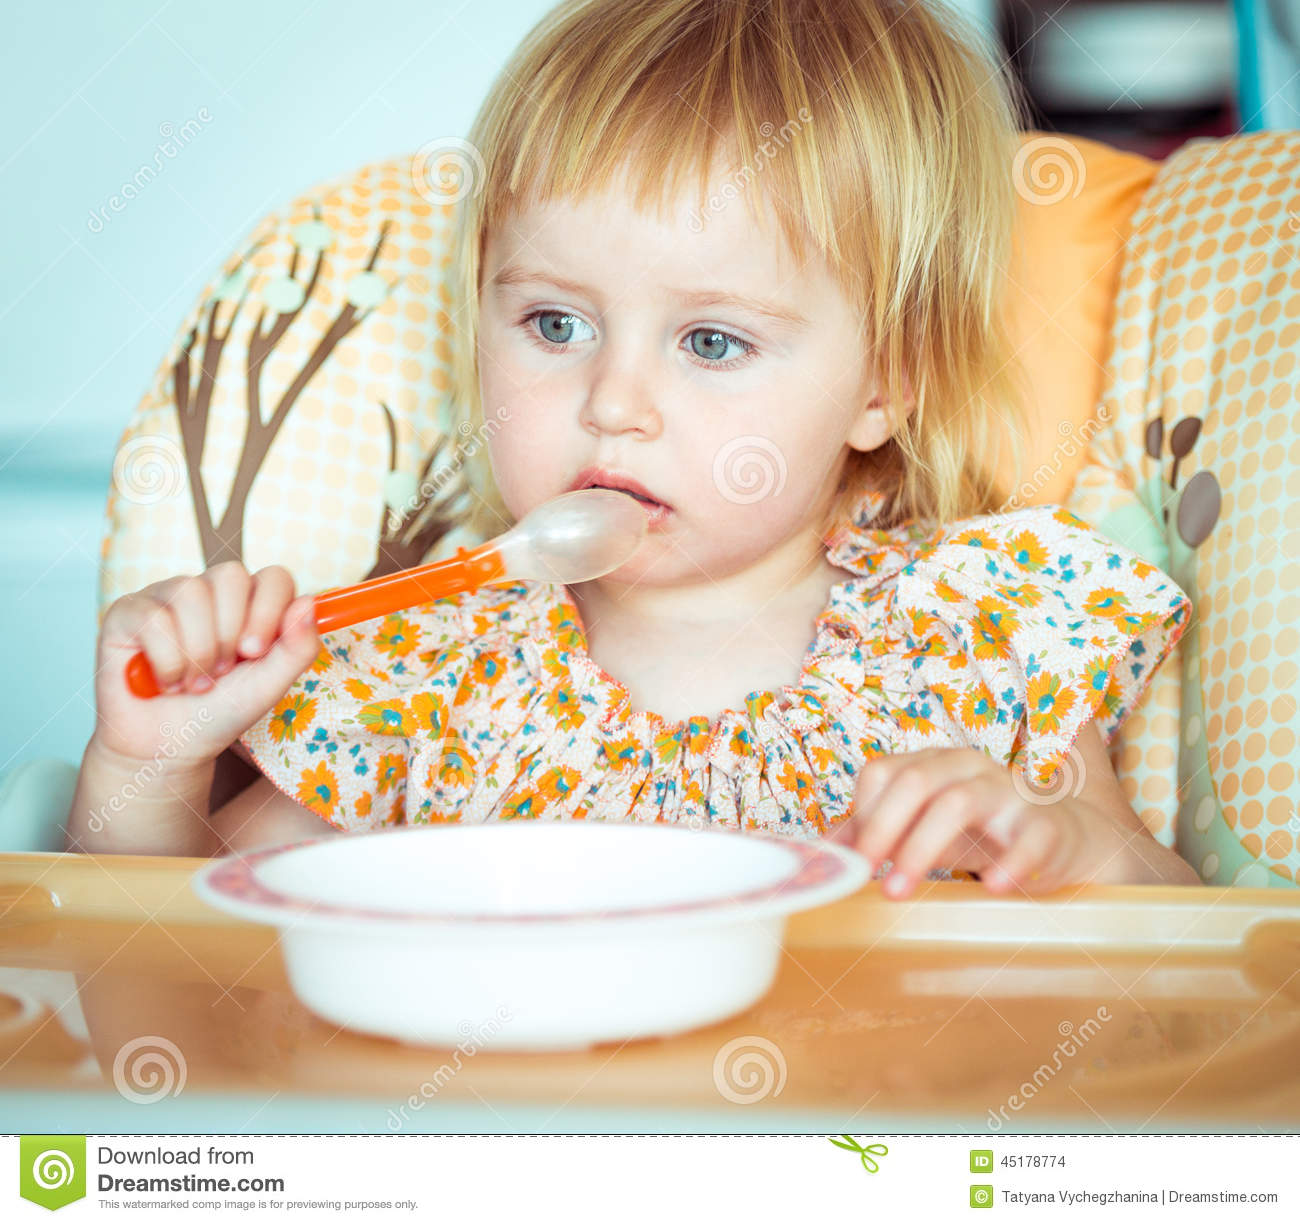 how to teach baby to eat with a spoon